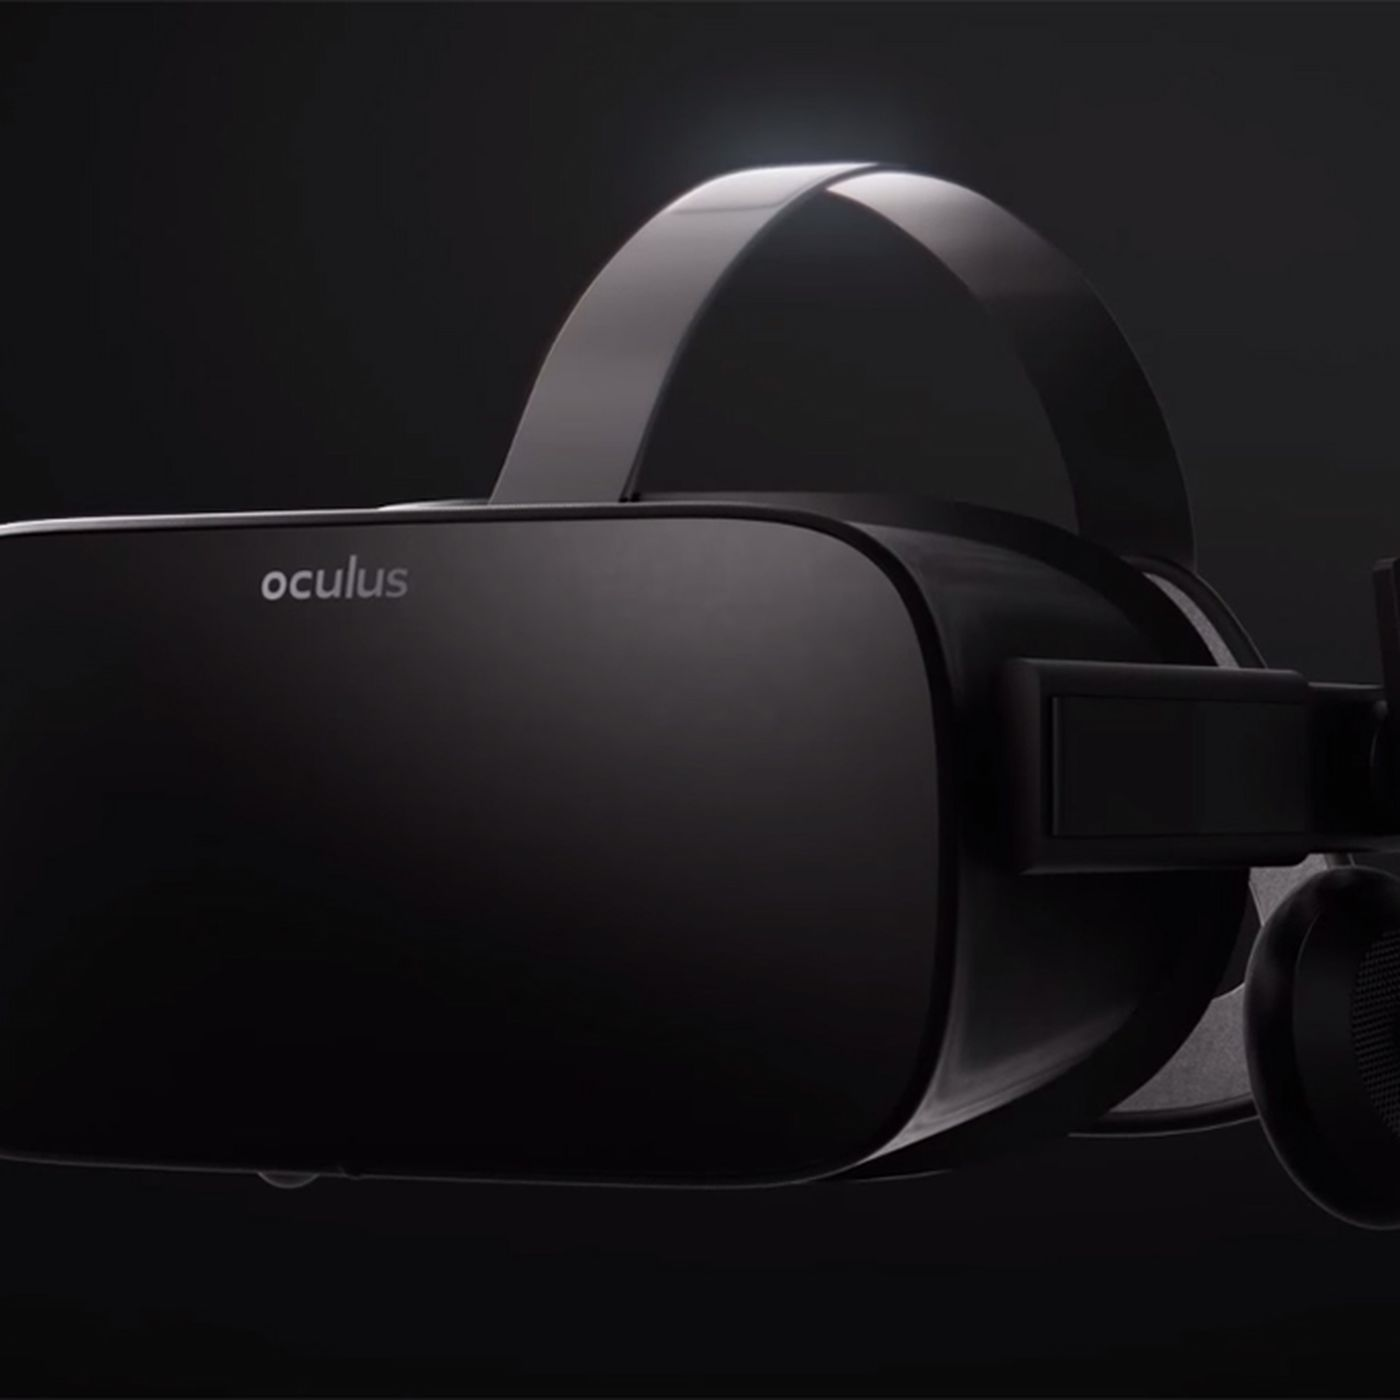 Oculus Rift headsets have stopped working because of an